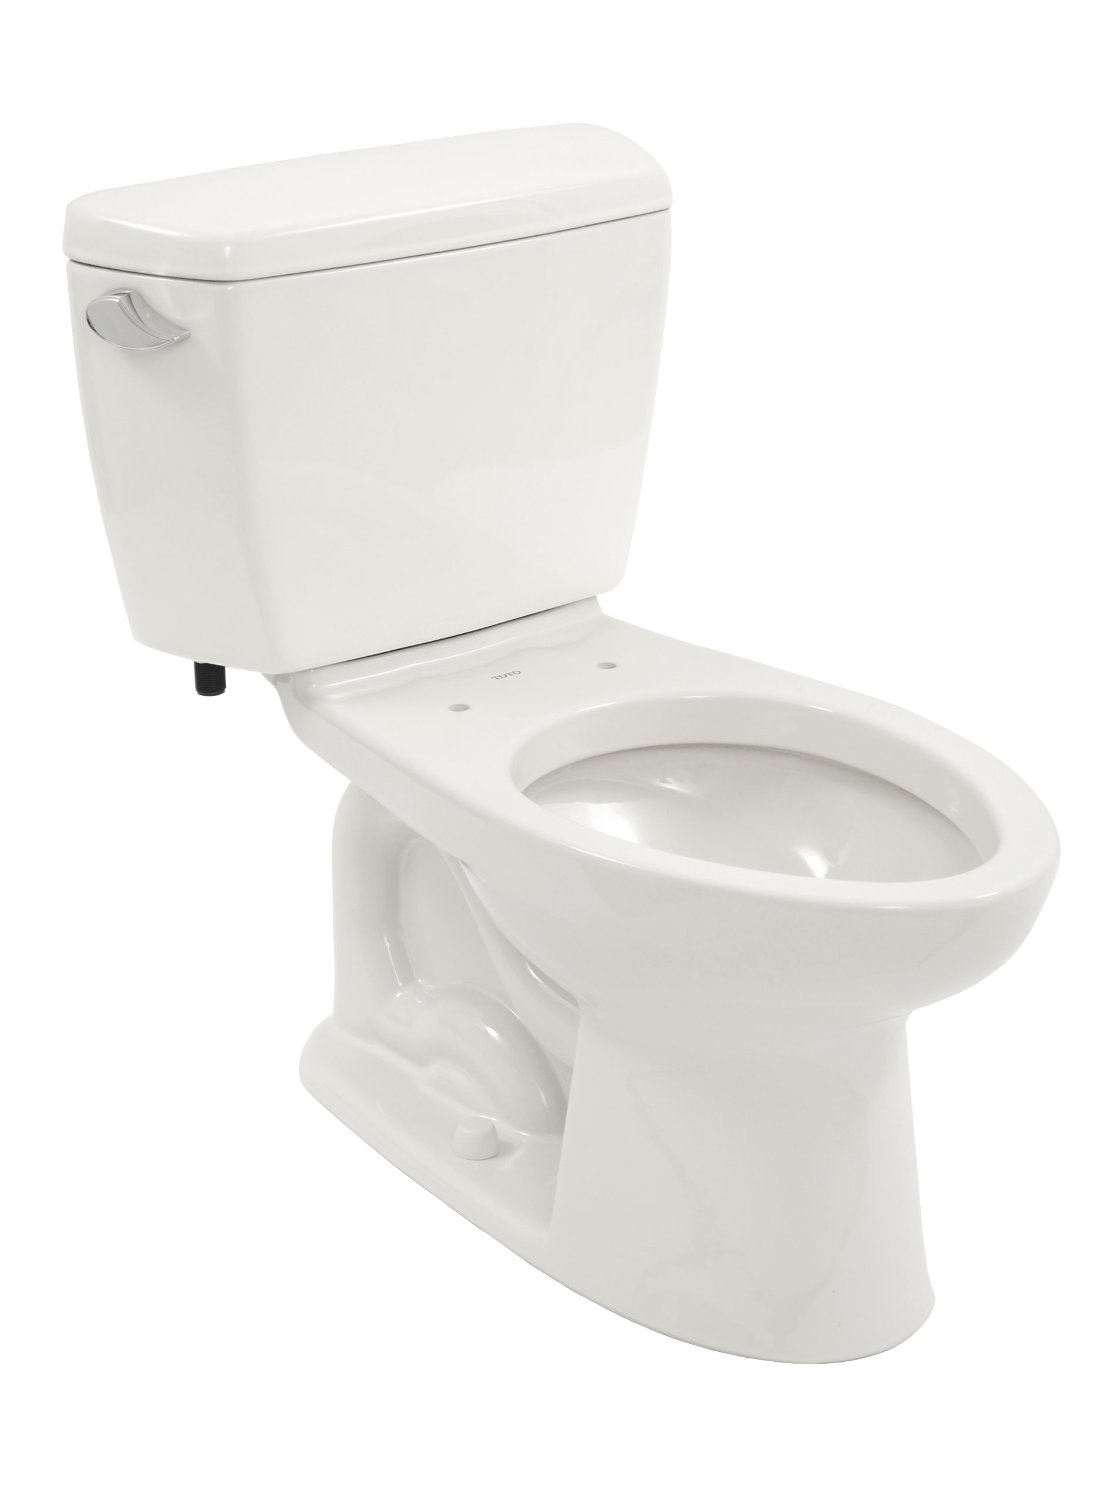 TOTO toilets CST744SG 01 Drake with Elongated Bowl for inspiring toilet furniture ideas